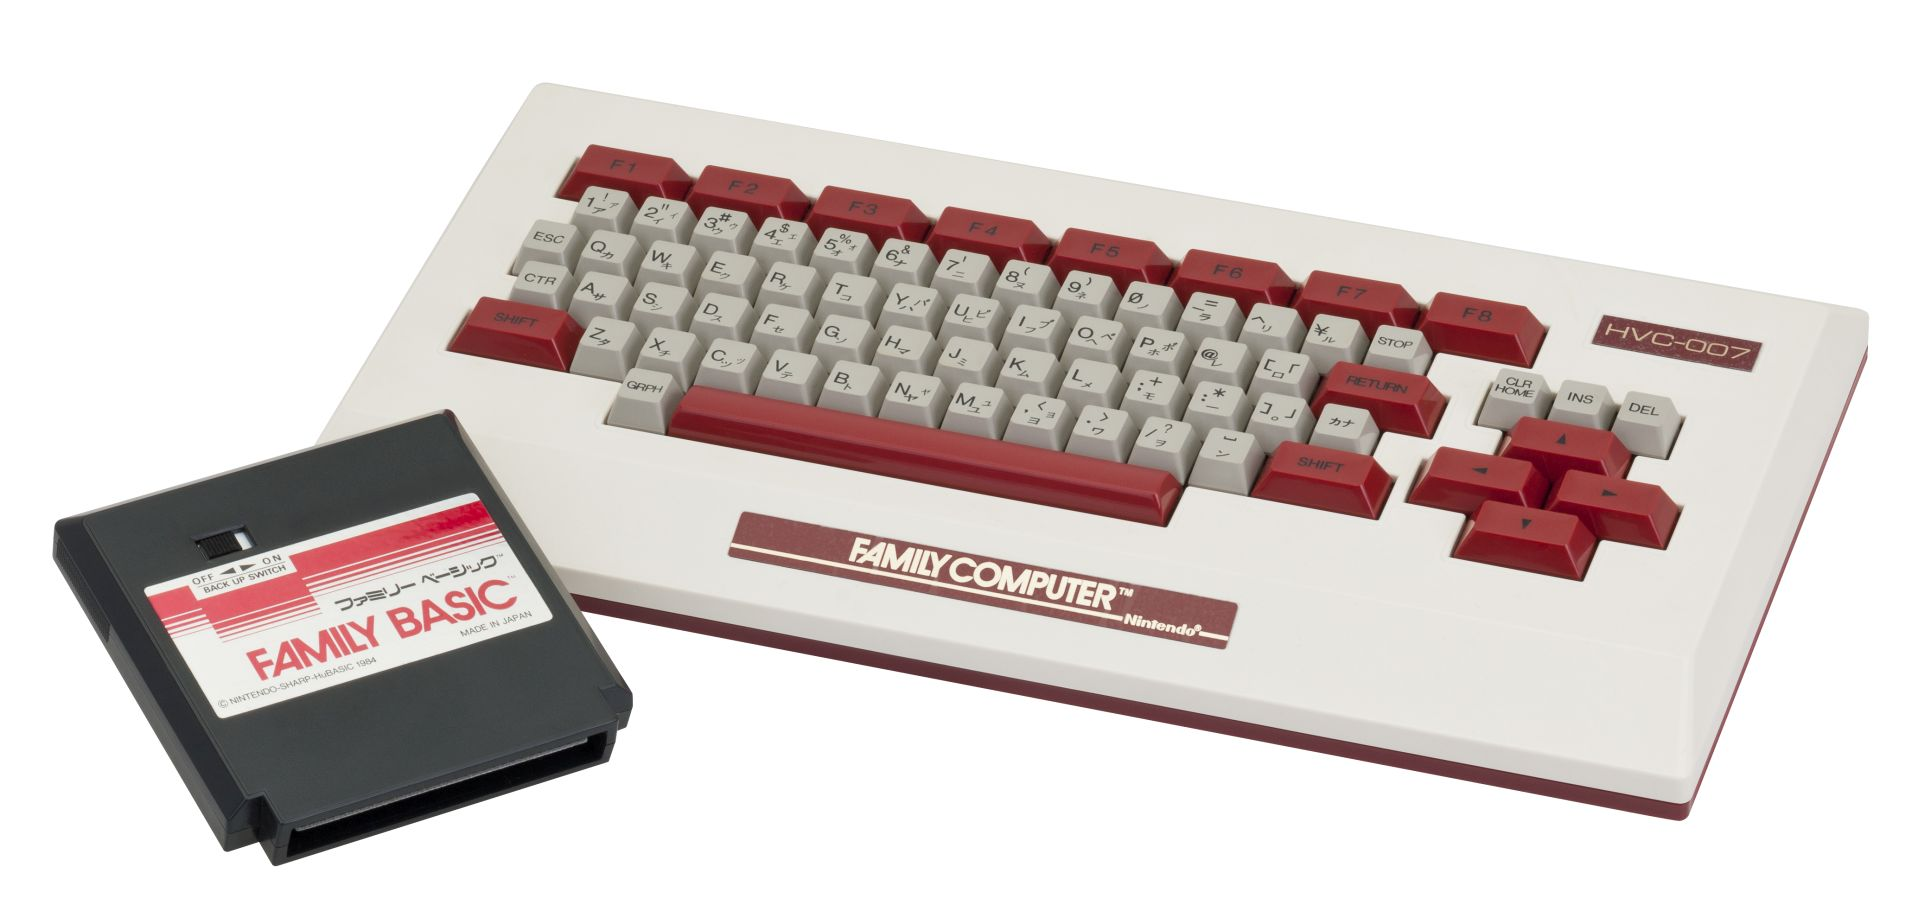 Nintendo released a dialect of BASIC in Japan, bundled alongside a keyboard, so users could play with writing code.